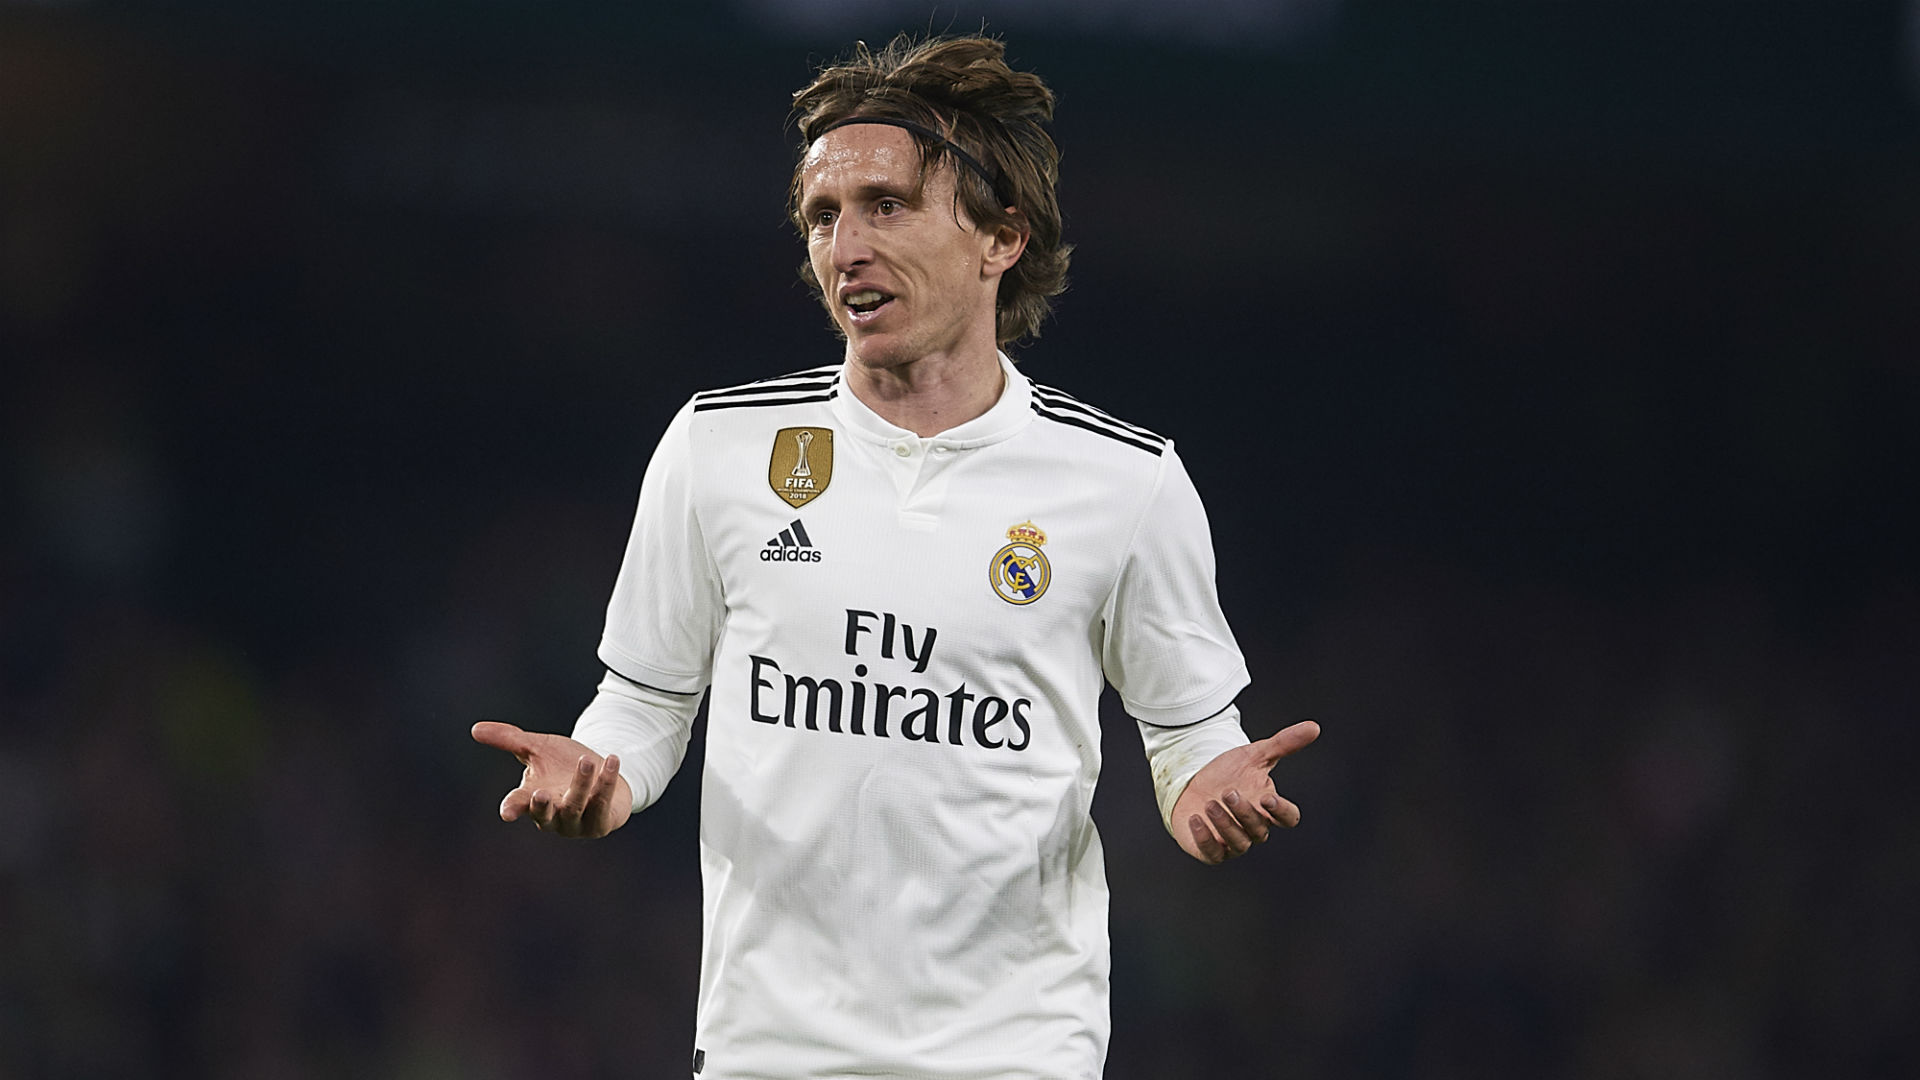 Maldini: Modric would be 'perfect' but Milan did not bid for Madrid star